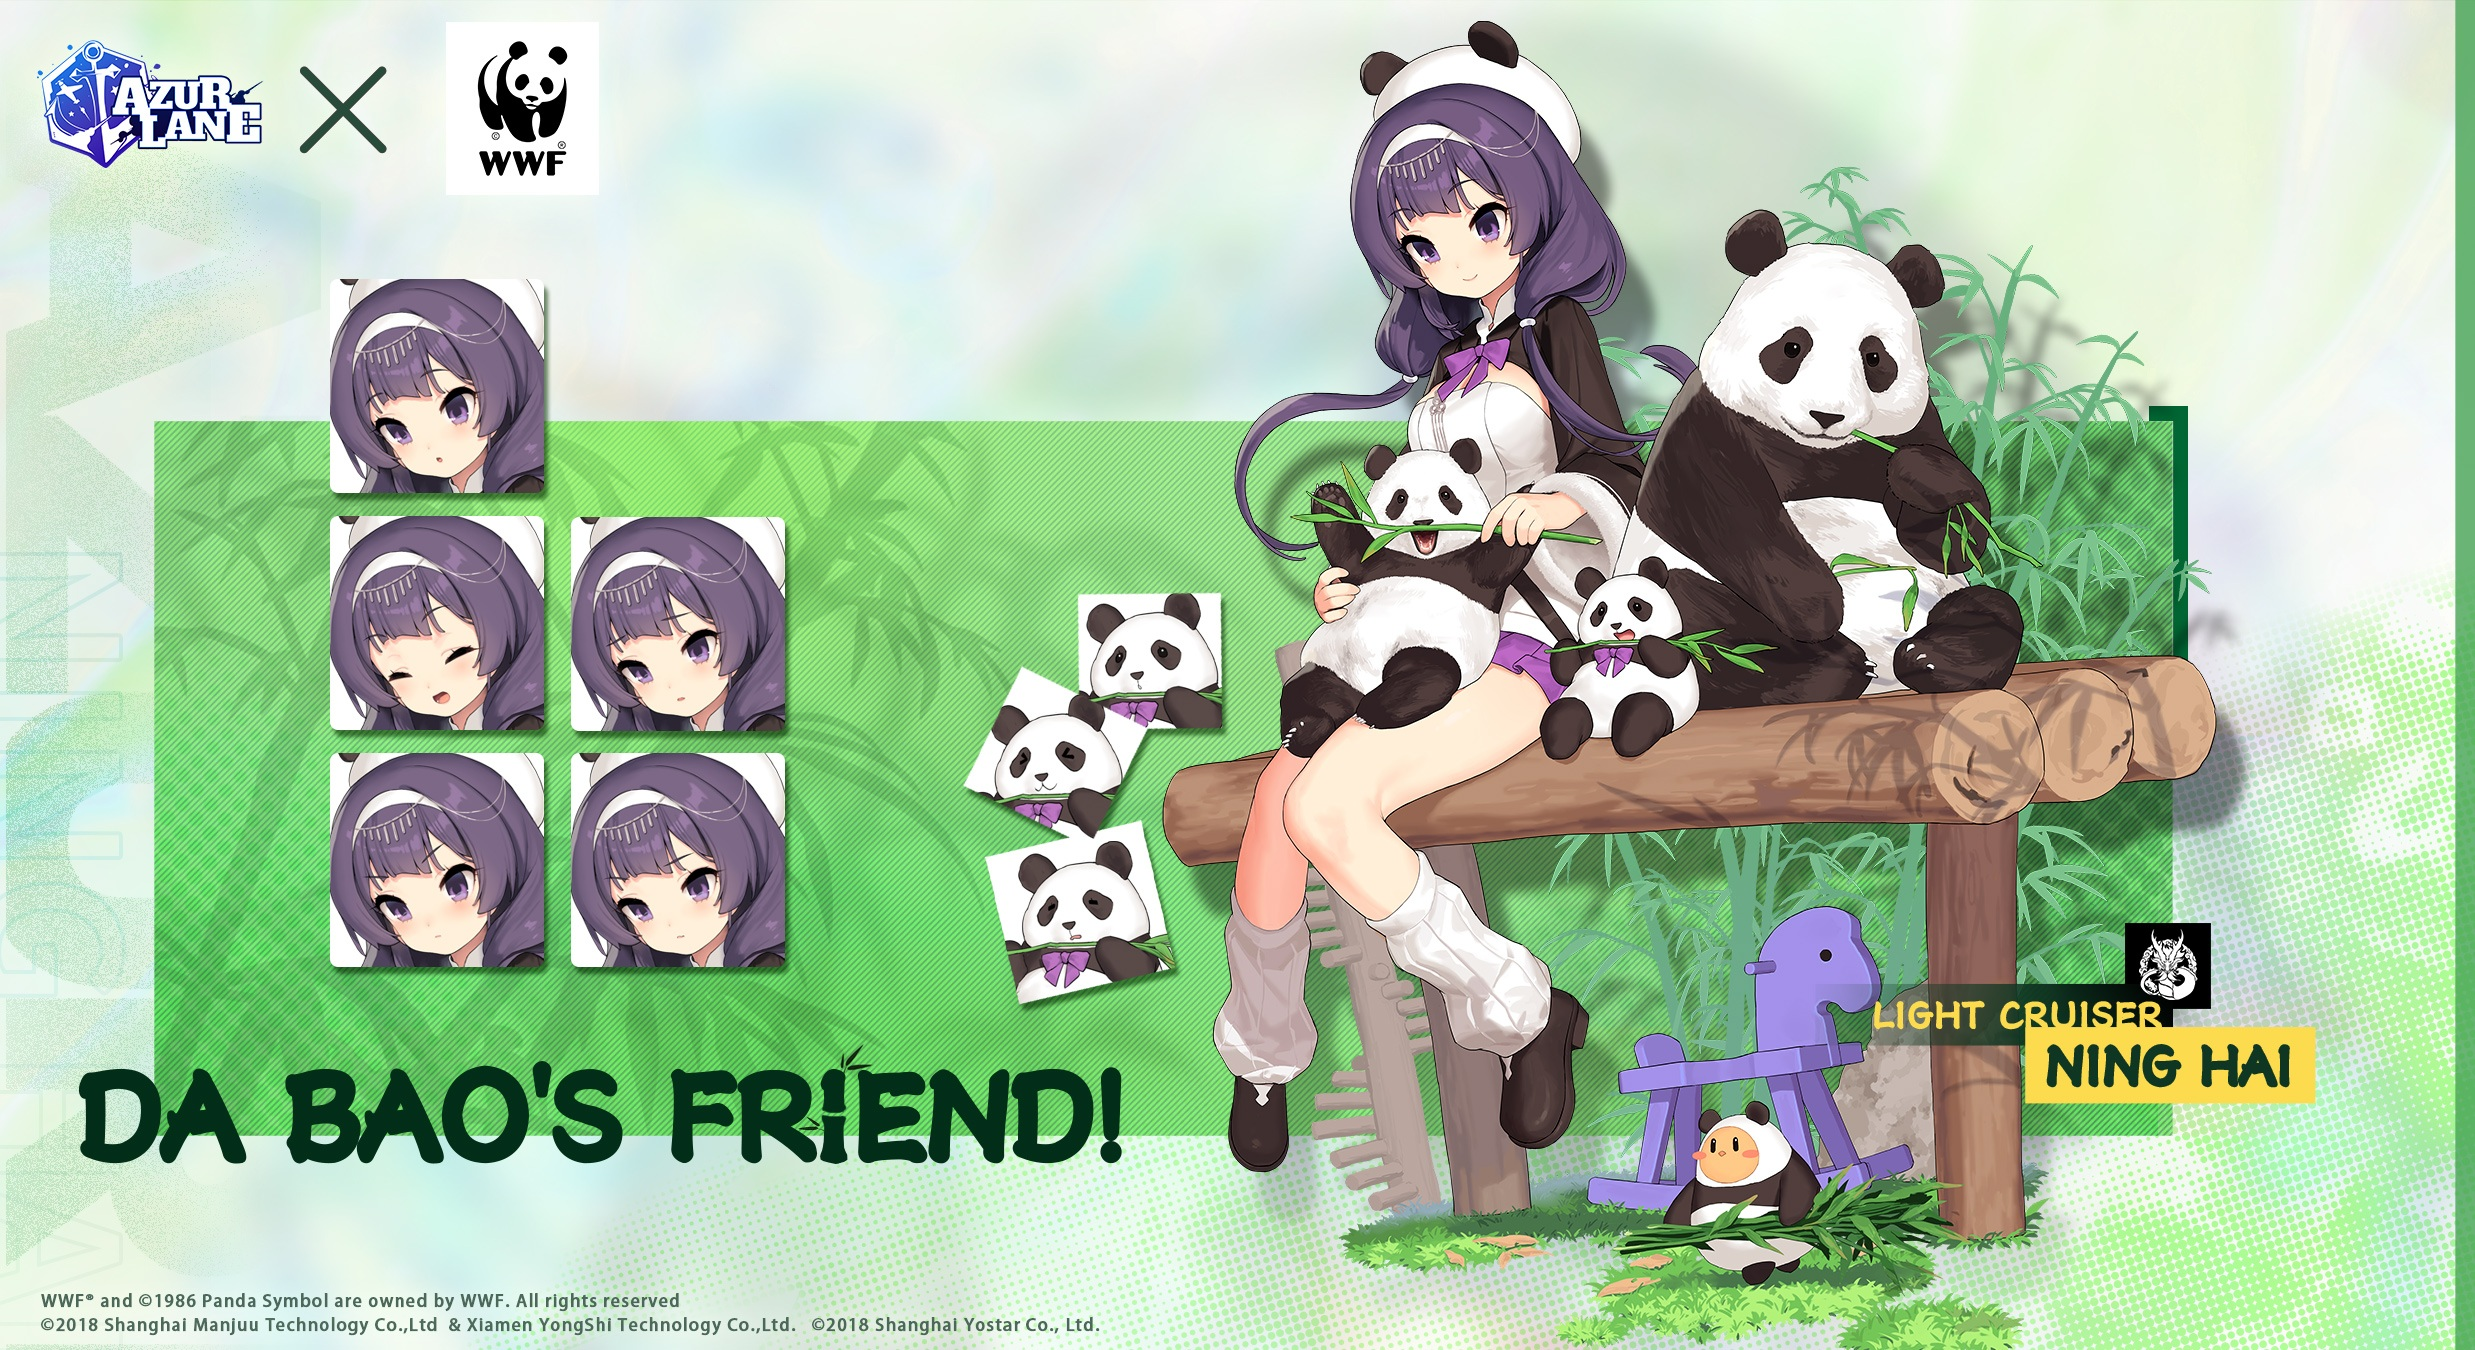 Azur Lane March Update: Here comes the Cutest Companions, Panda Ping Hai and Ning Hai